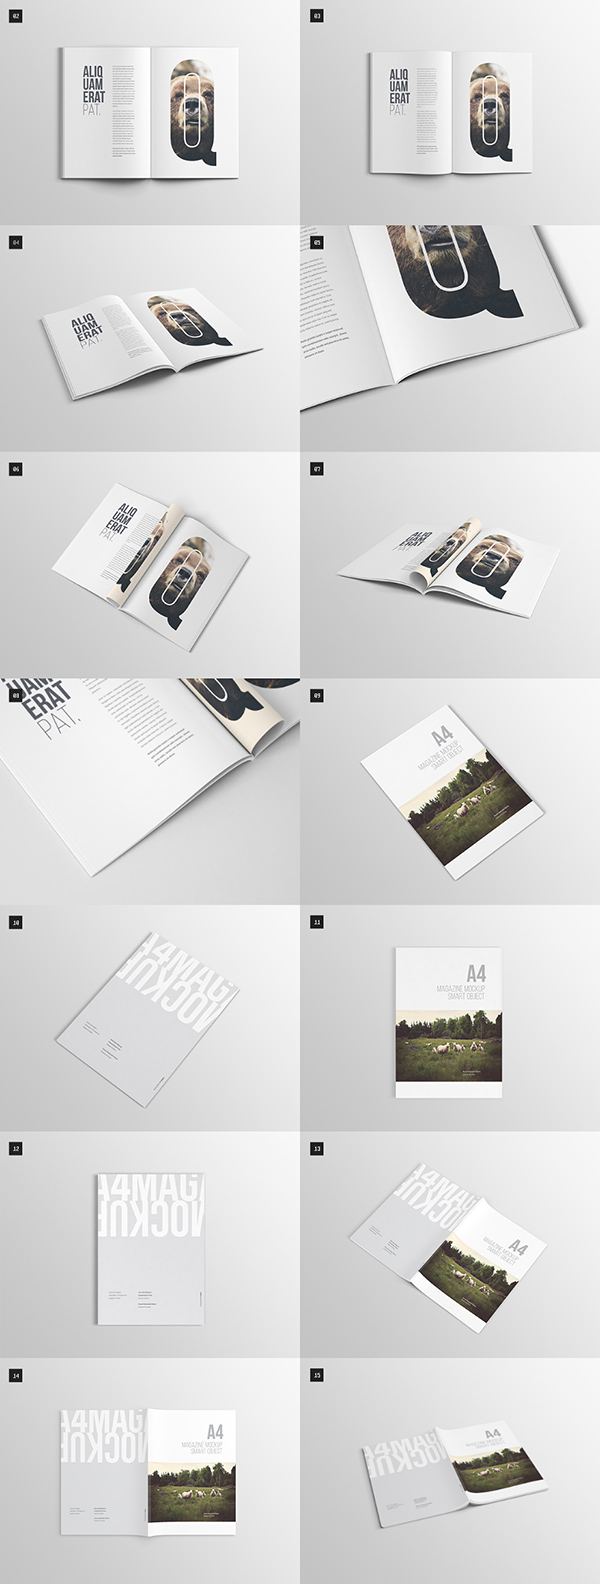 Download Gratis Mockup Majalah, Brosur, Buku, Cover - A4 Magazine Mock-up